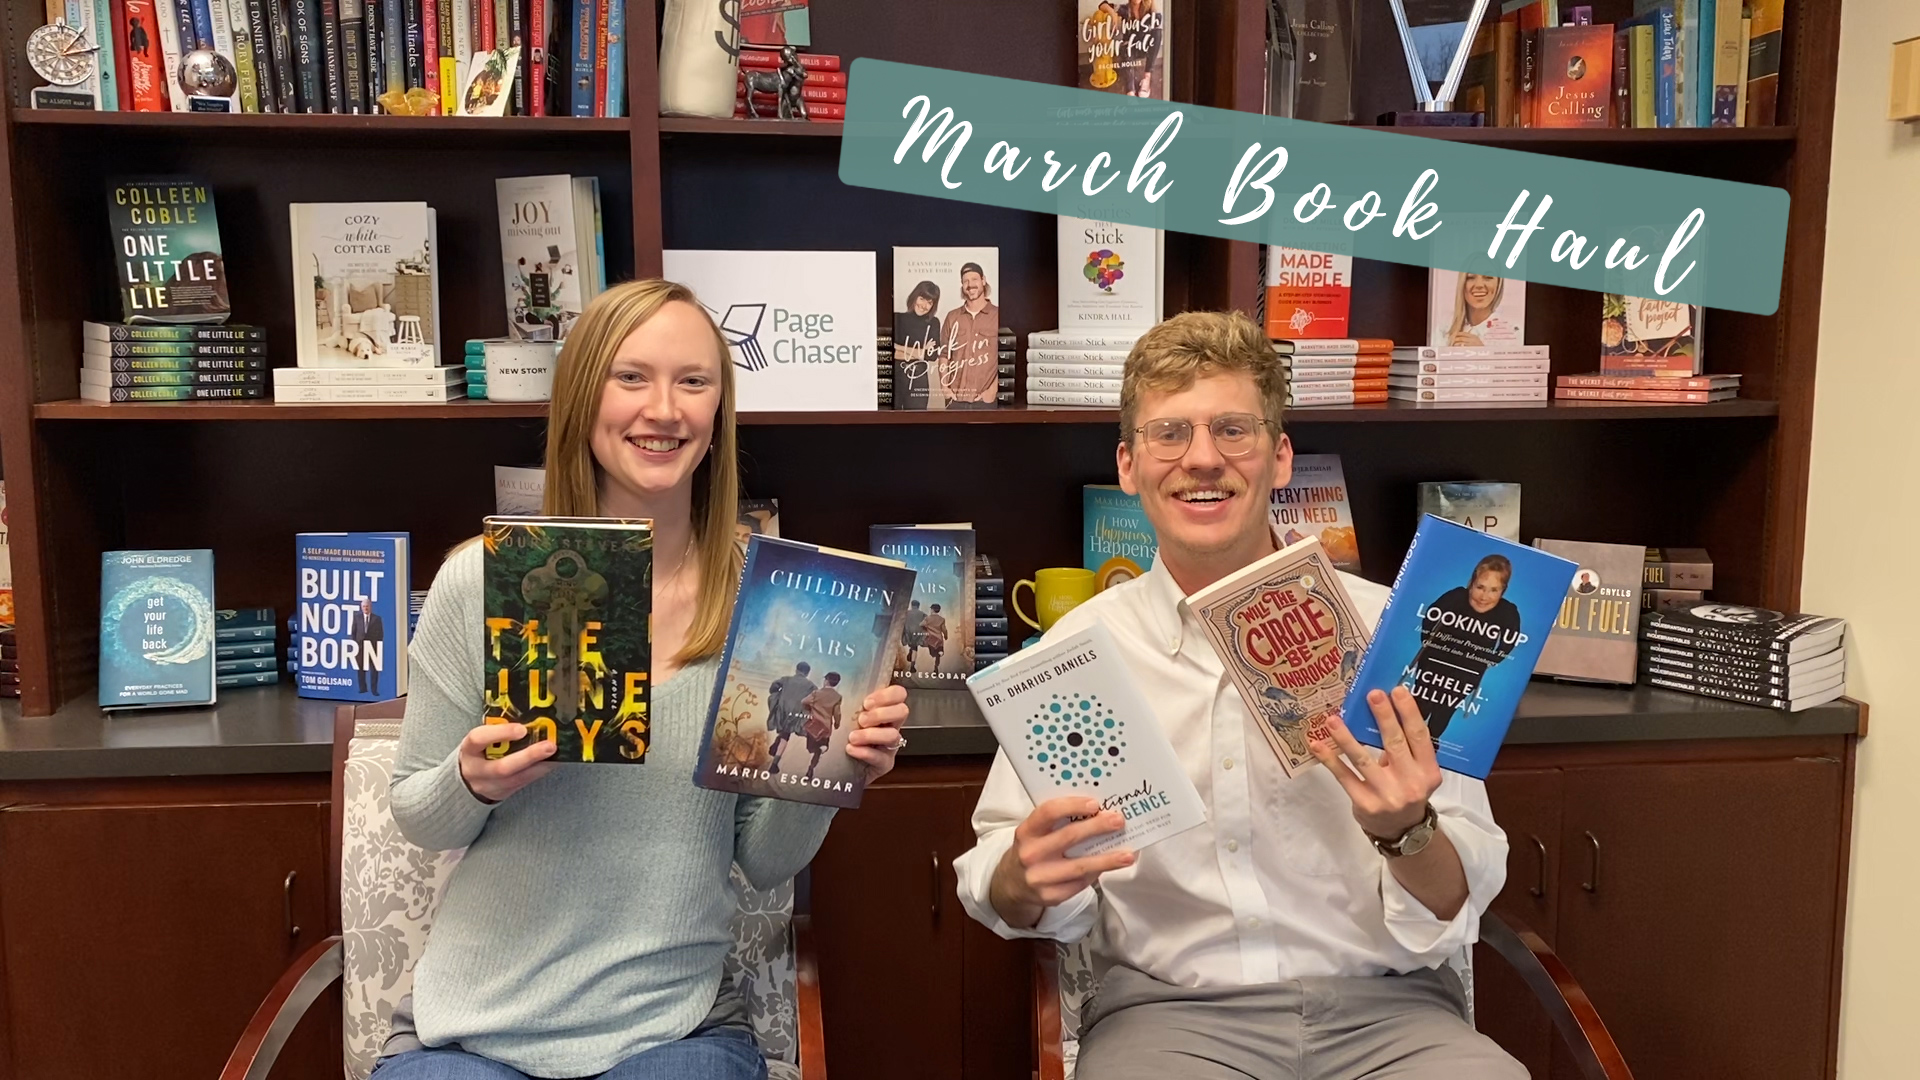 march book releases book haul